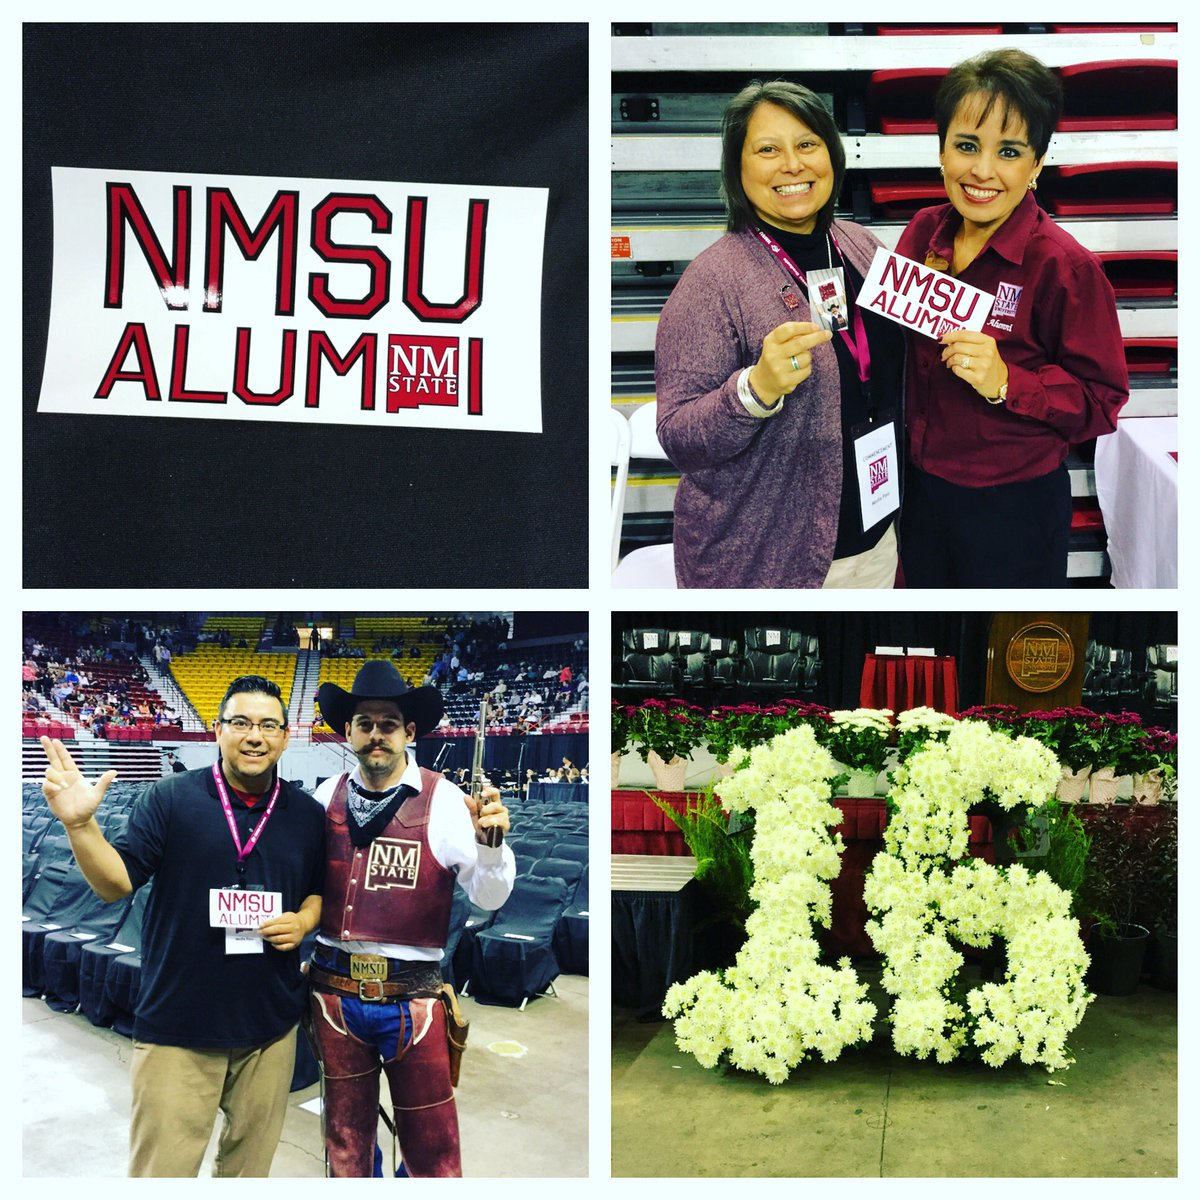 We are ready for the morning #NMSU Conmencement. Who's ready to be a #NMSUGrad ? #supportnmsu #goaggies #aggies https://t.co/ymxuROrD0d